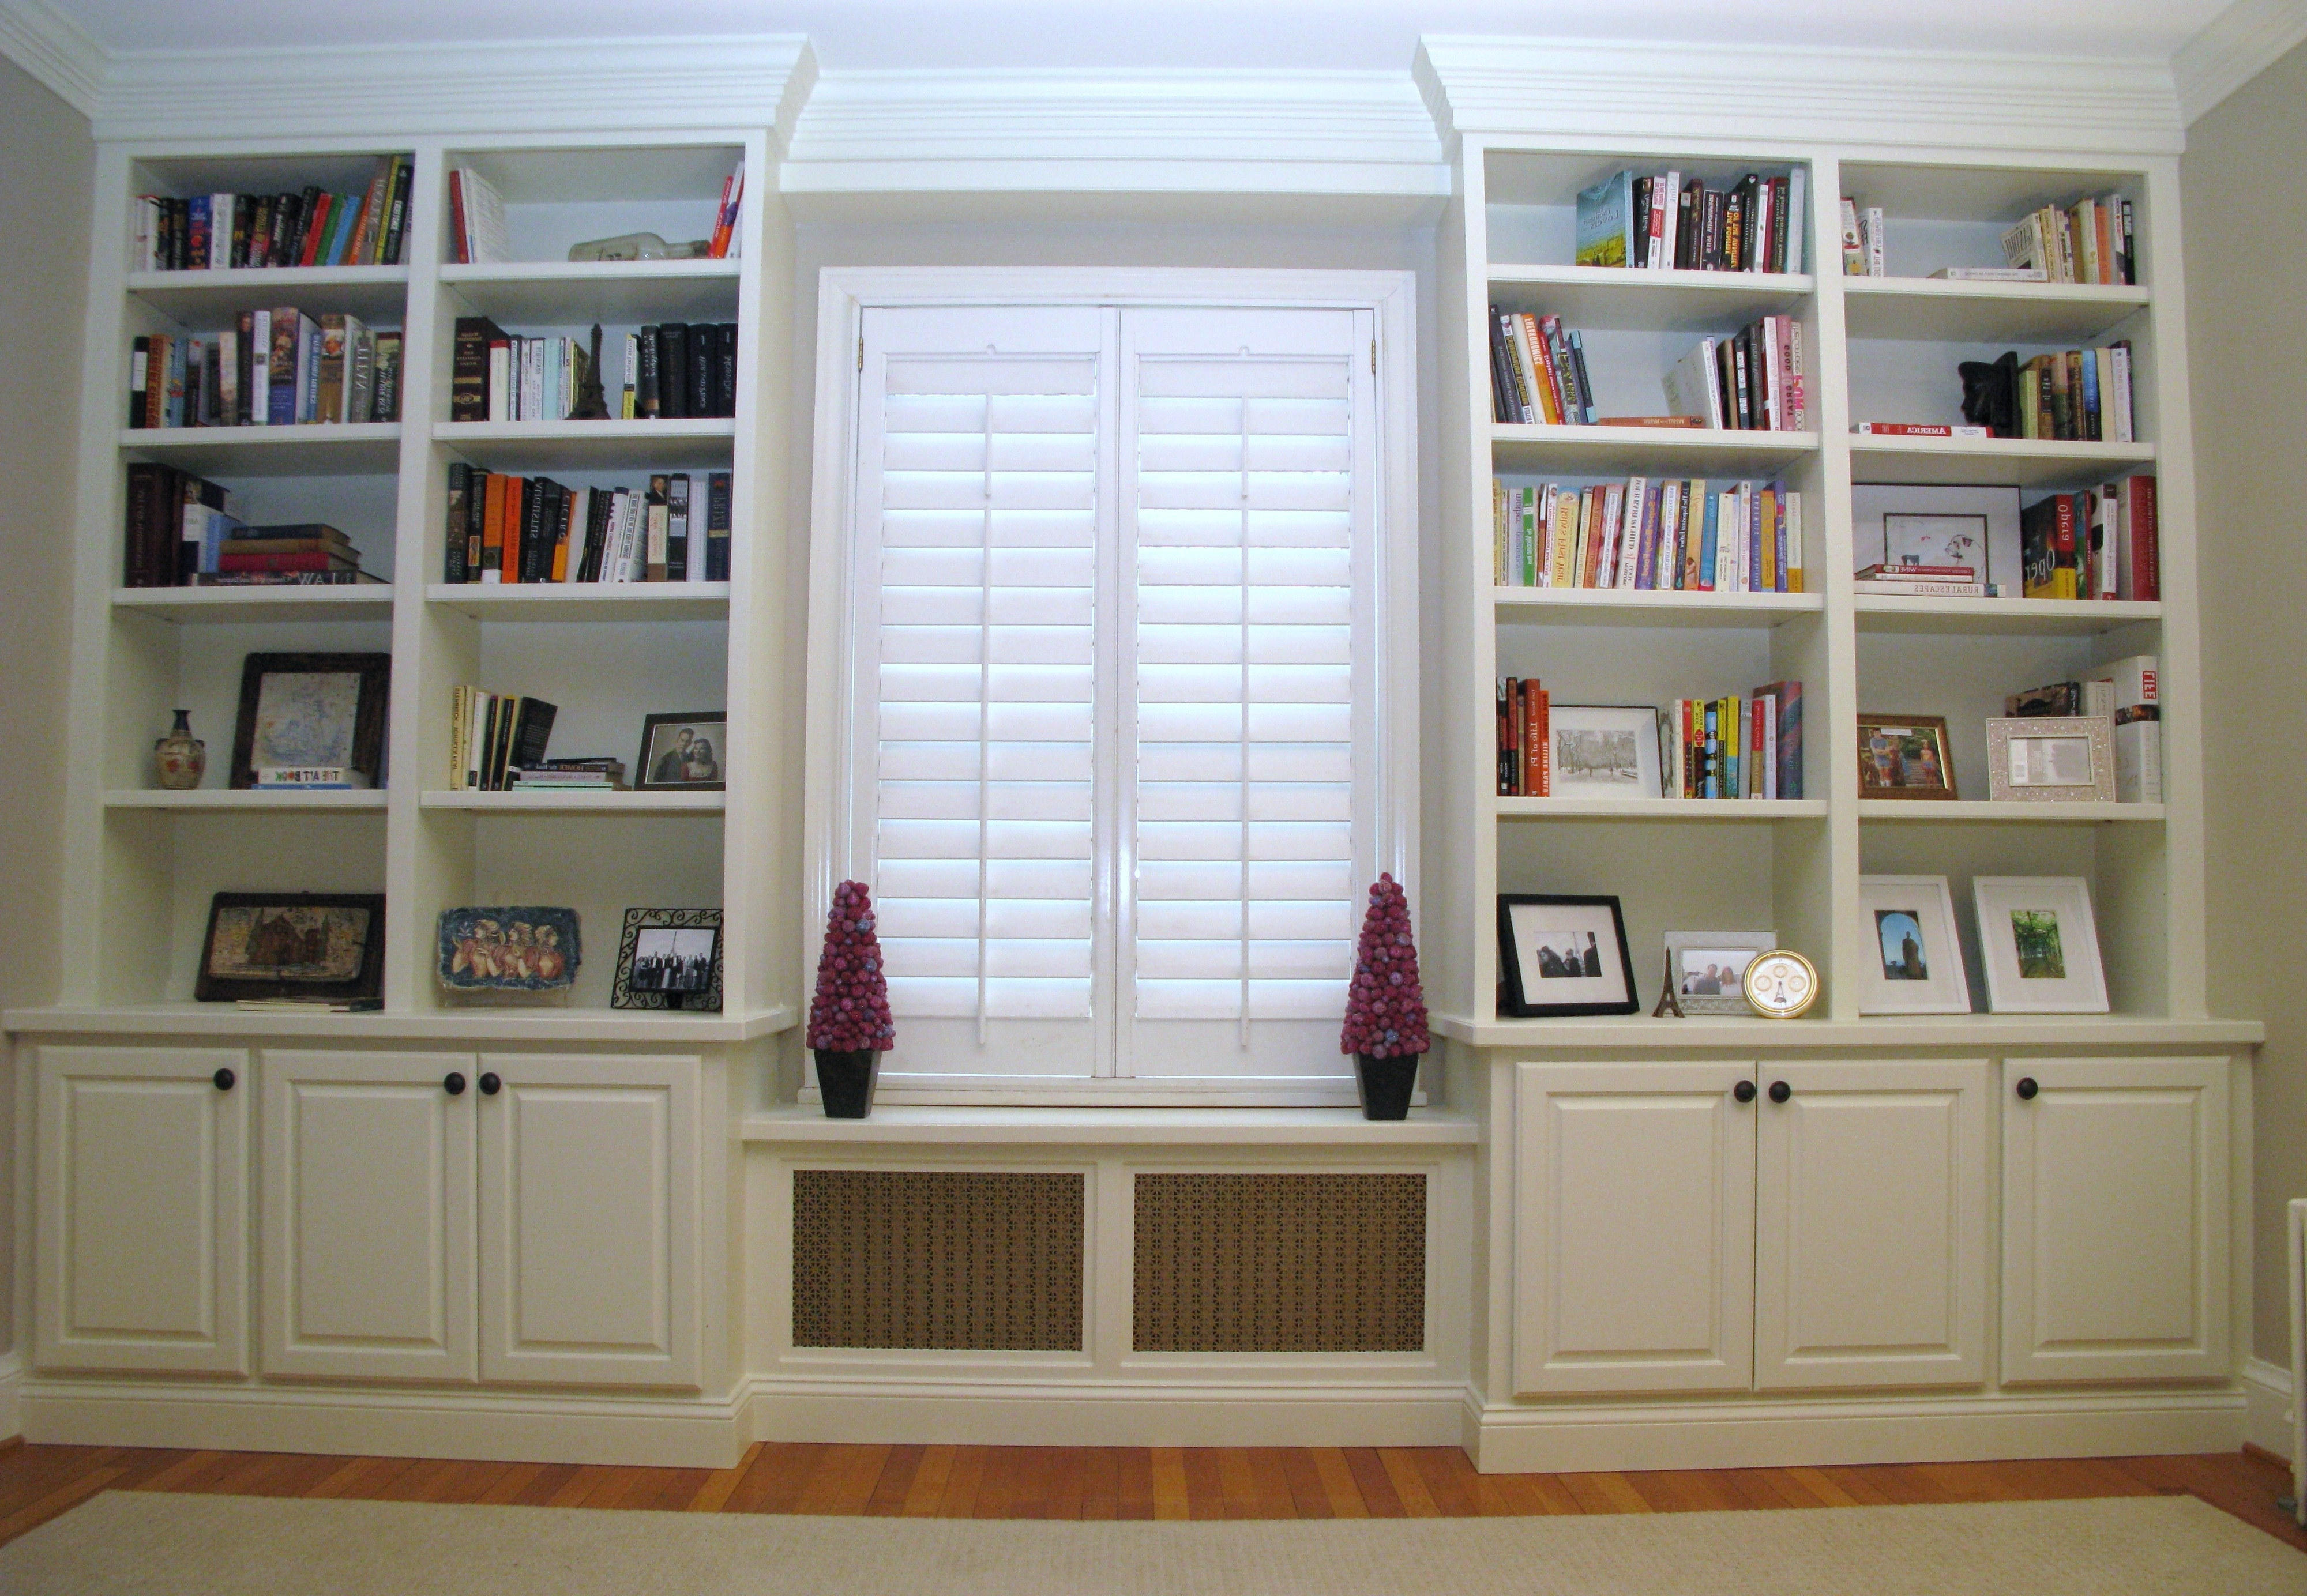 Washington Dc Custom Radiator Cover Contractor Remodeling 150Cm With Regard To Fashionable Radiator Cover Bookshelves (View 15 of 15)